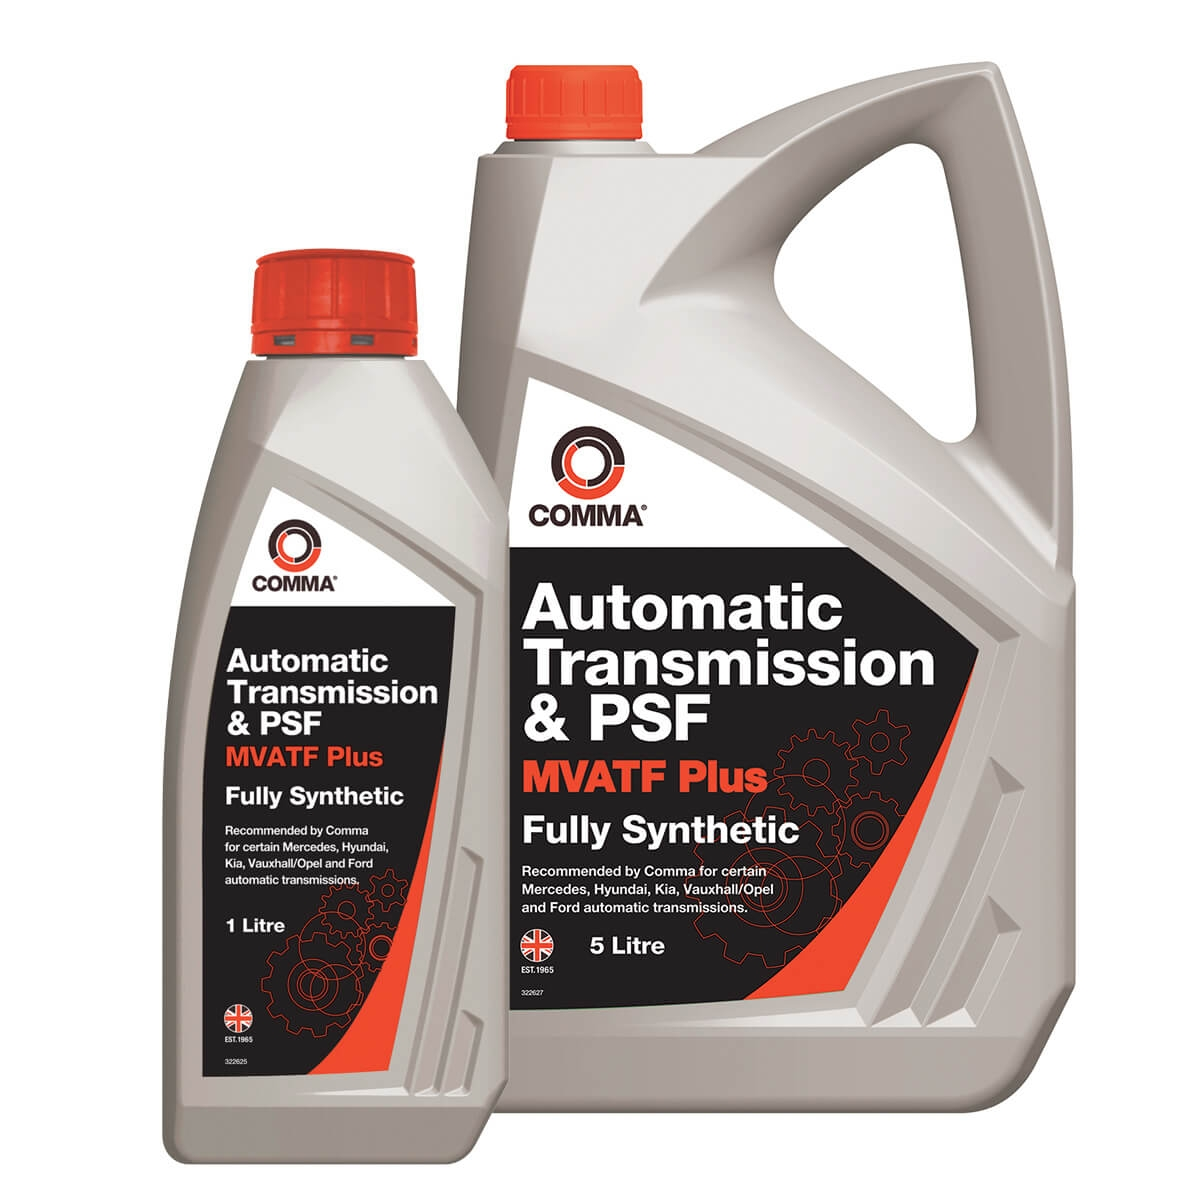 AUDI RSQ3 Automatic Transmission Oil